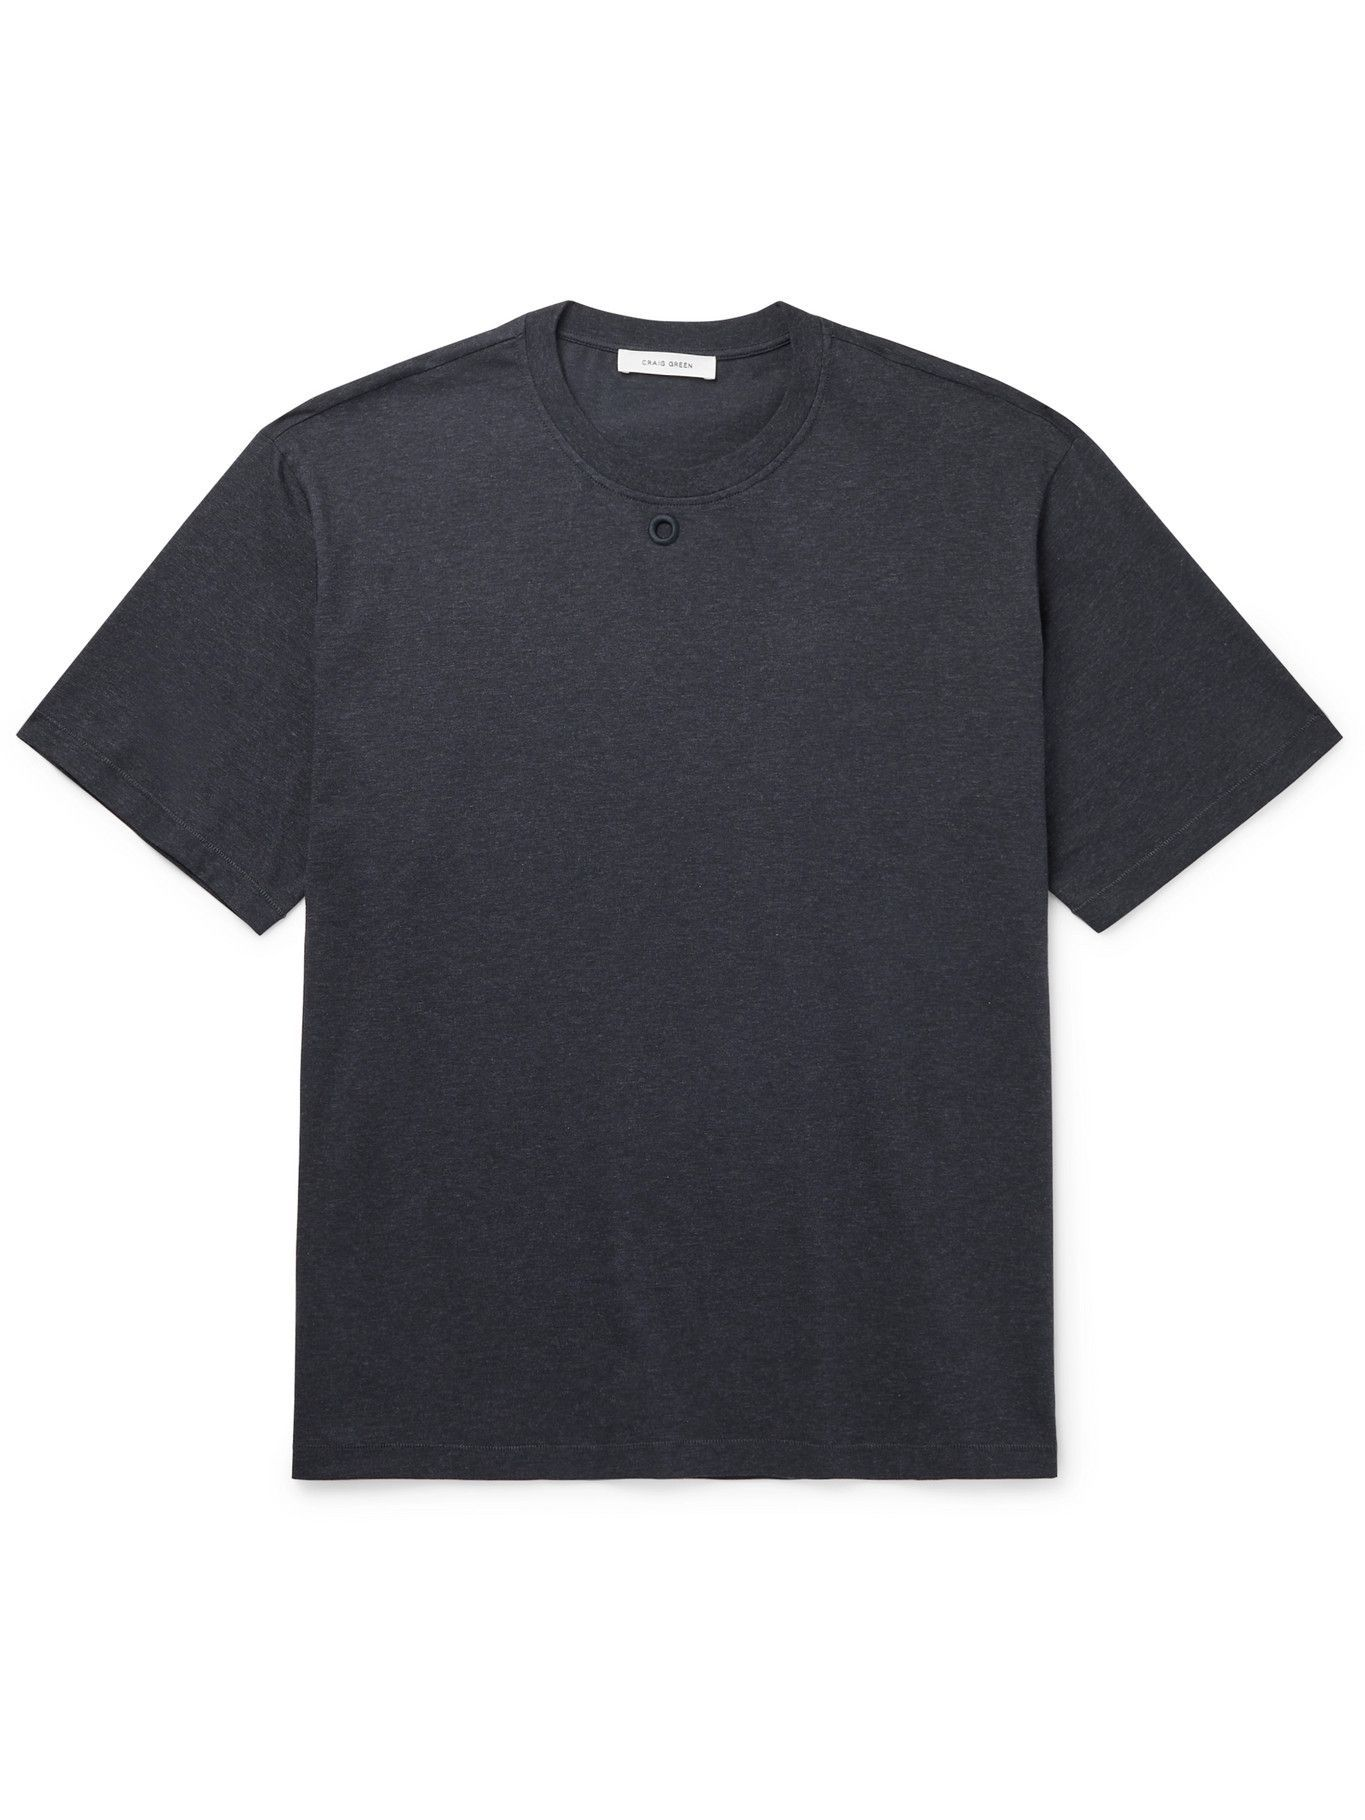 Photo: CRAIG GREEN - Embroidered Cotton-Jersey T-Shirt - Gray